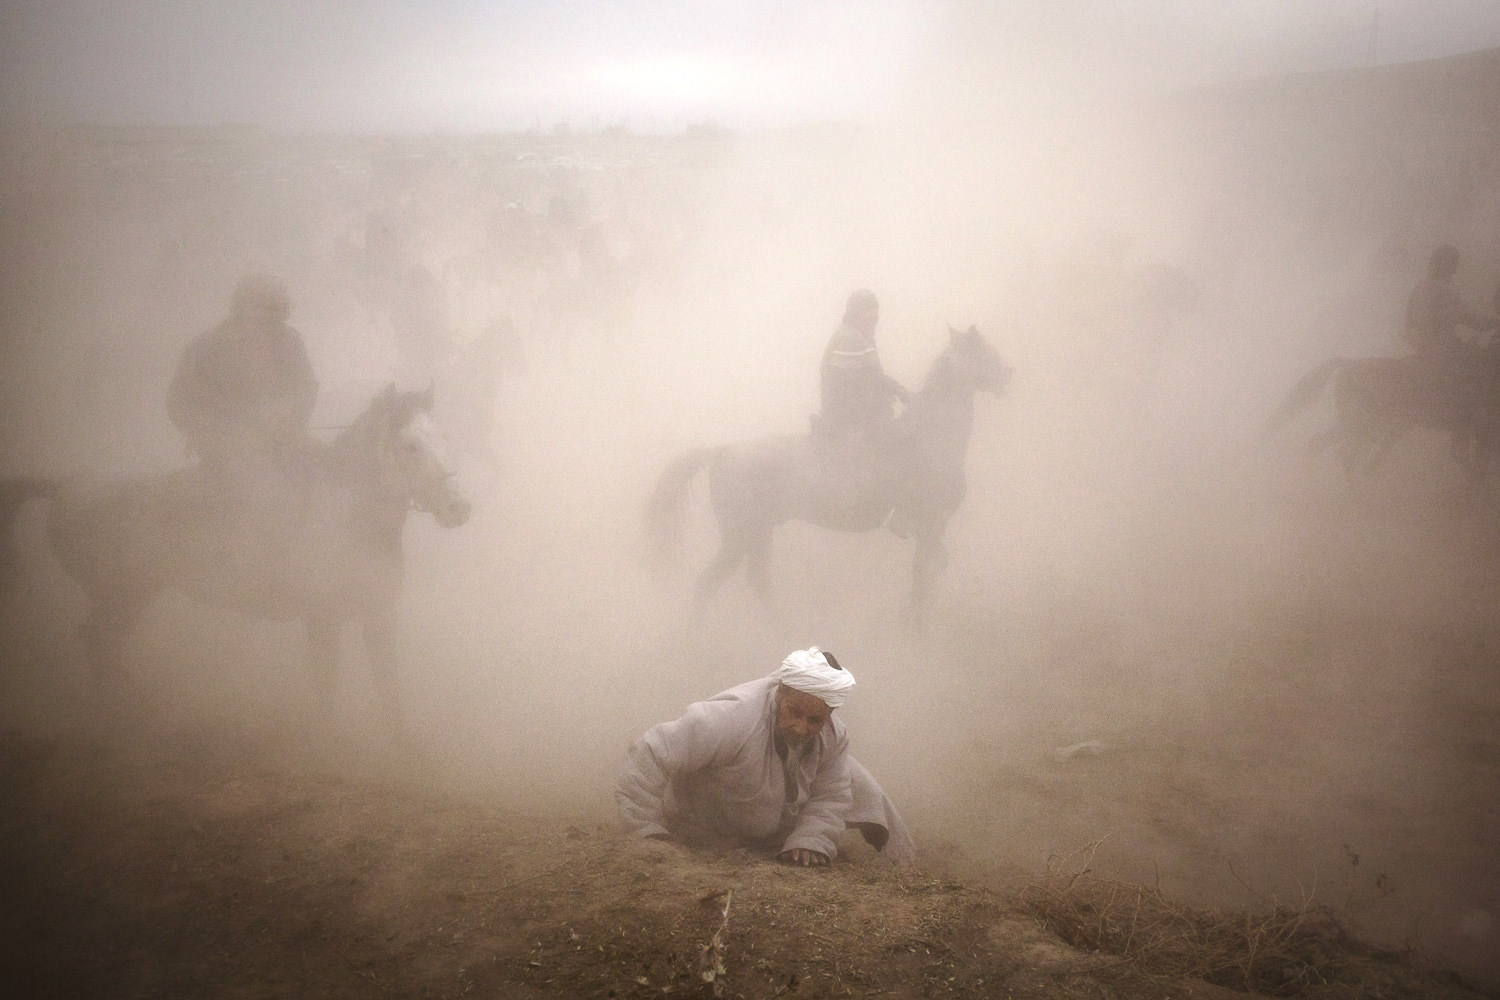 Too slow to jump to a retreat with the rest of the audience, an old man is lost in the dust of a horde of buzkashi horses. Near Sharinav, Tajikistan. Popular throughout much of Central Asia, buzkashi is a form of horse polo in which horseback players wrestle a goat carcass across a playing field.